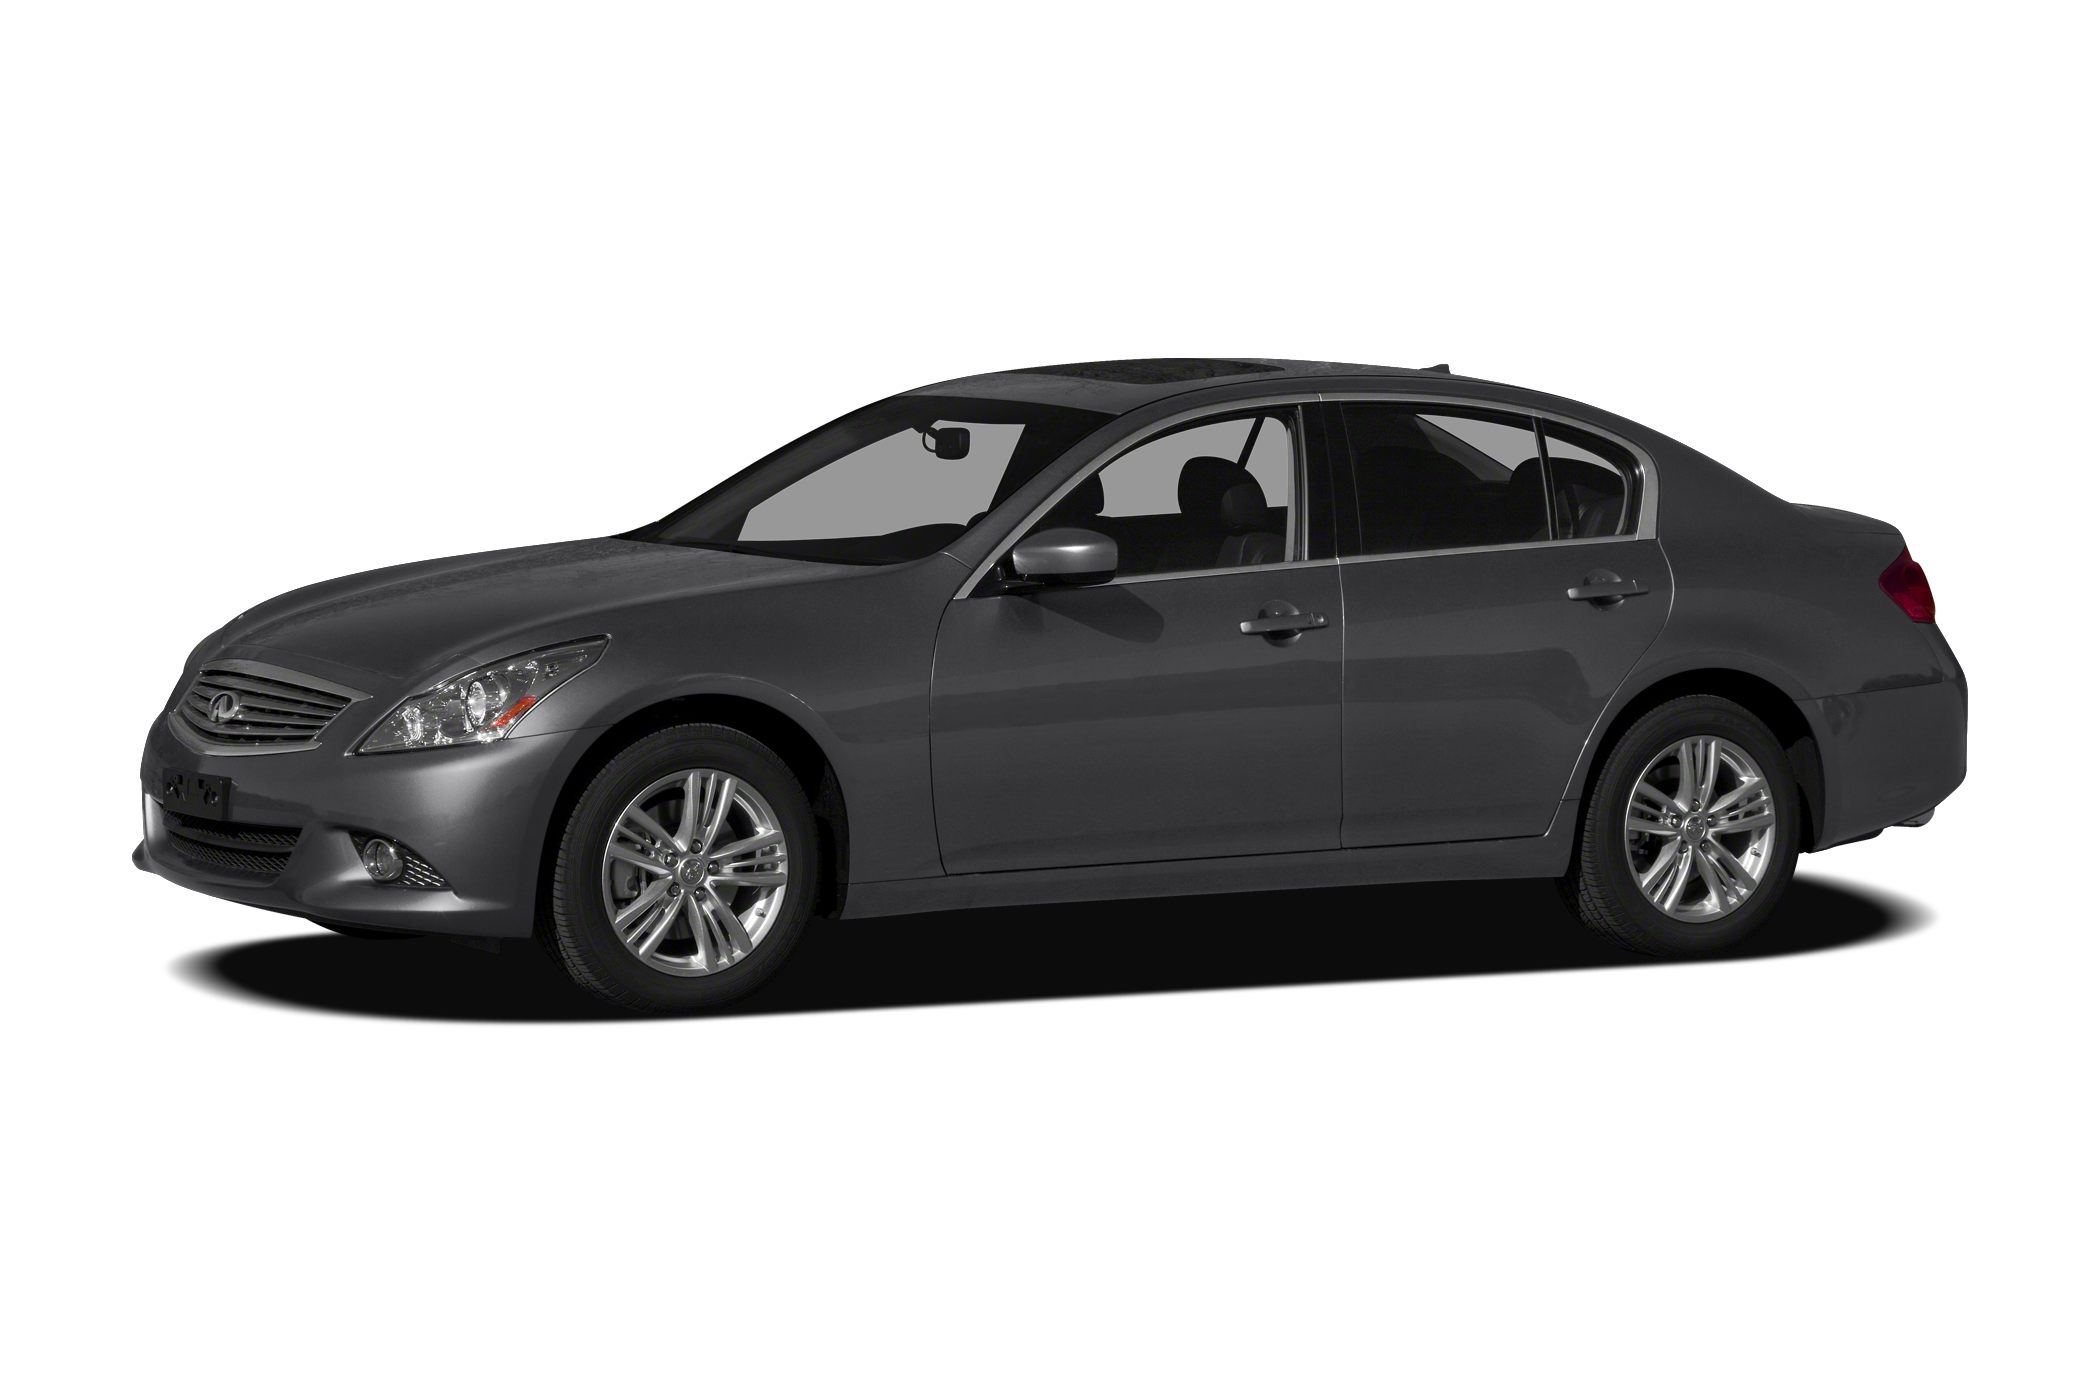 2011 Infiniti G25 X Sedan for sale in Montgomery for $18,988 with 74,213 miles